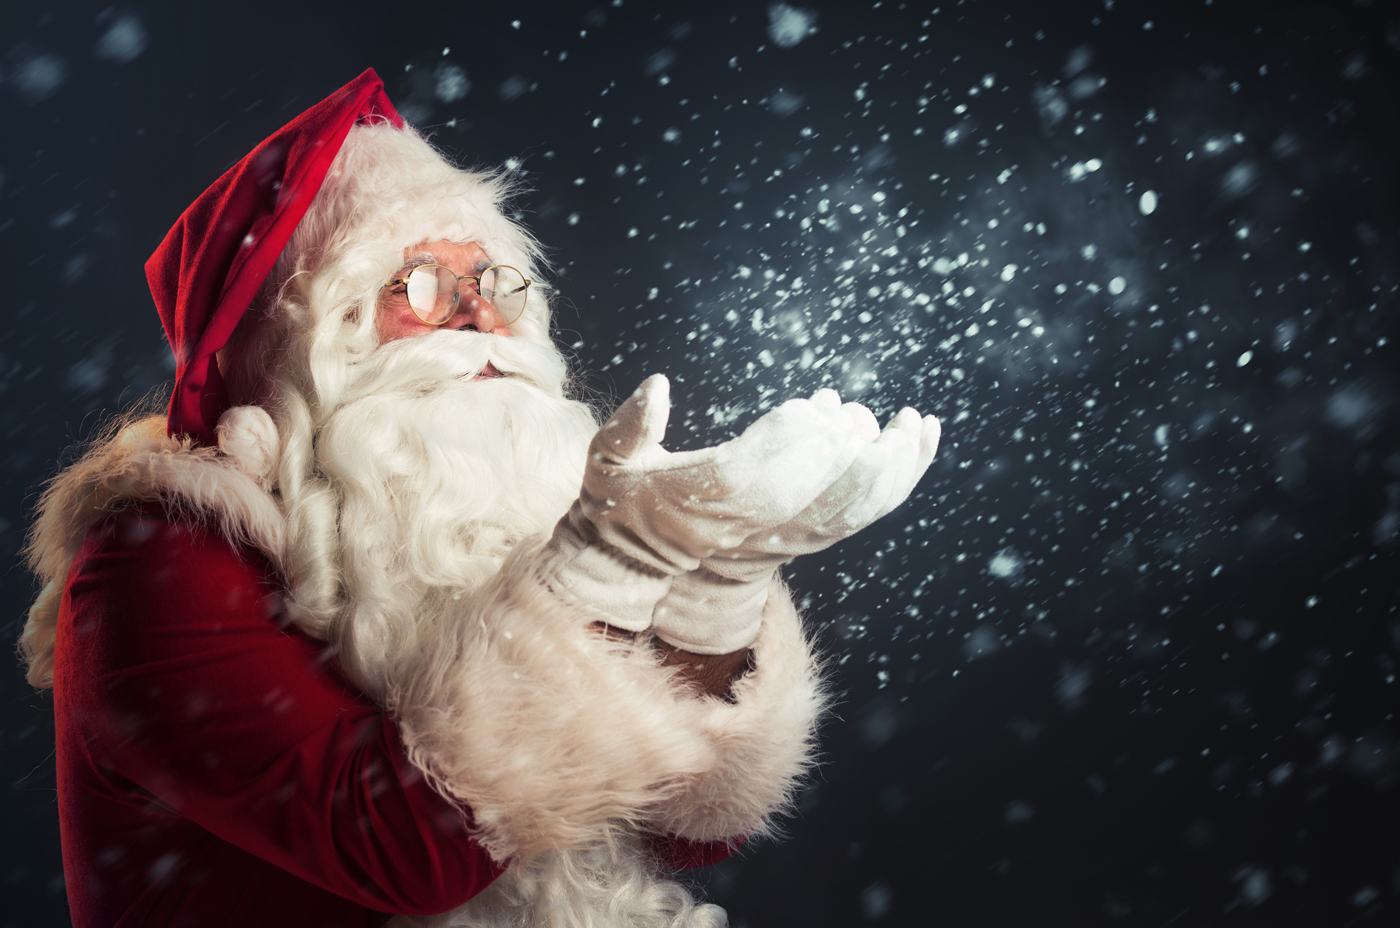 We hear Santa is coming to town. You can see him and experience the magic of Christmas when you book into the Comfort Suites, one of the best hotels in Kelowna.